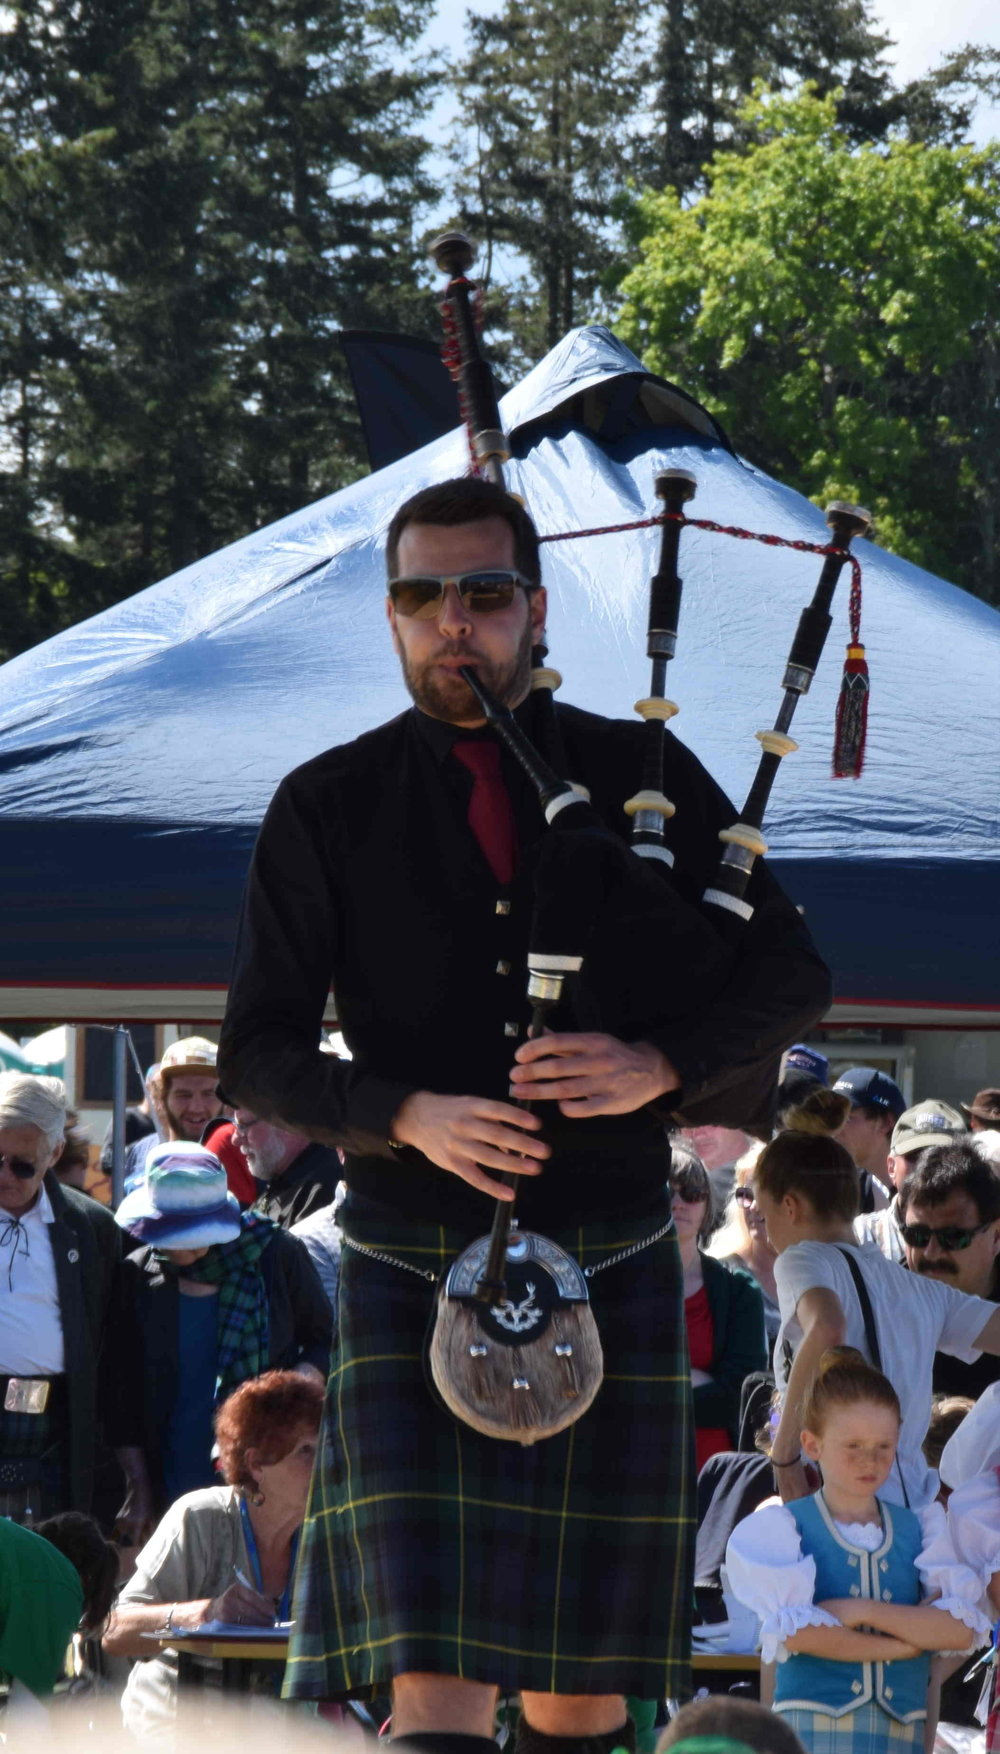 """Kyle Warren, Chieftain for the Hororata Highland Games 2016, a piping """"rock star"""" and one of the most sought after piping tutors around the world"""